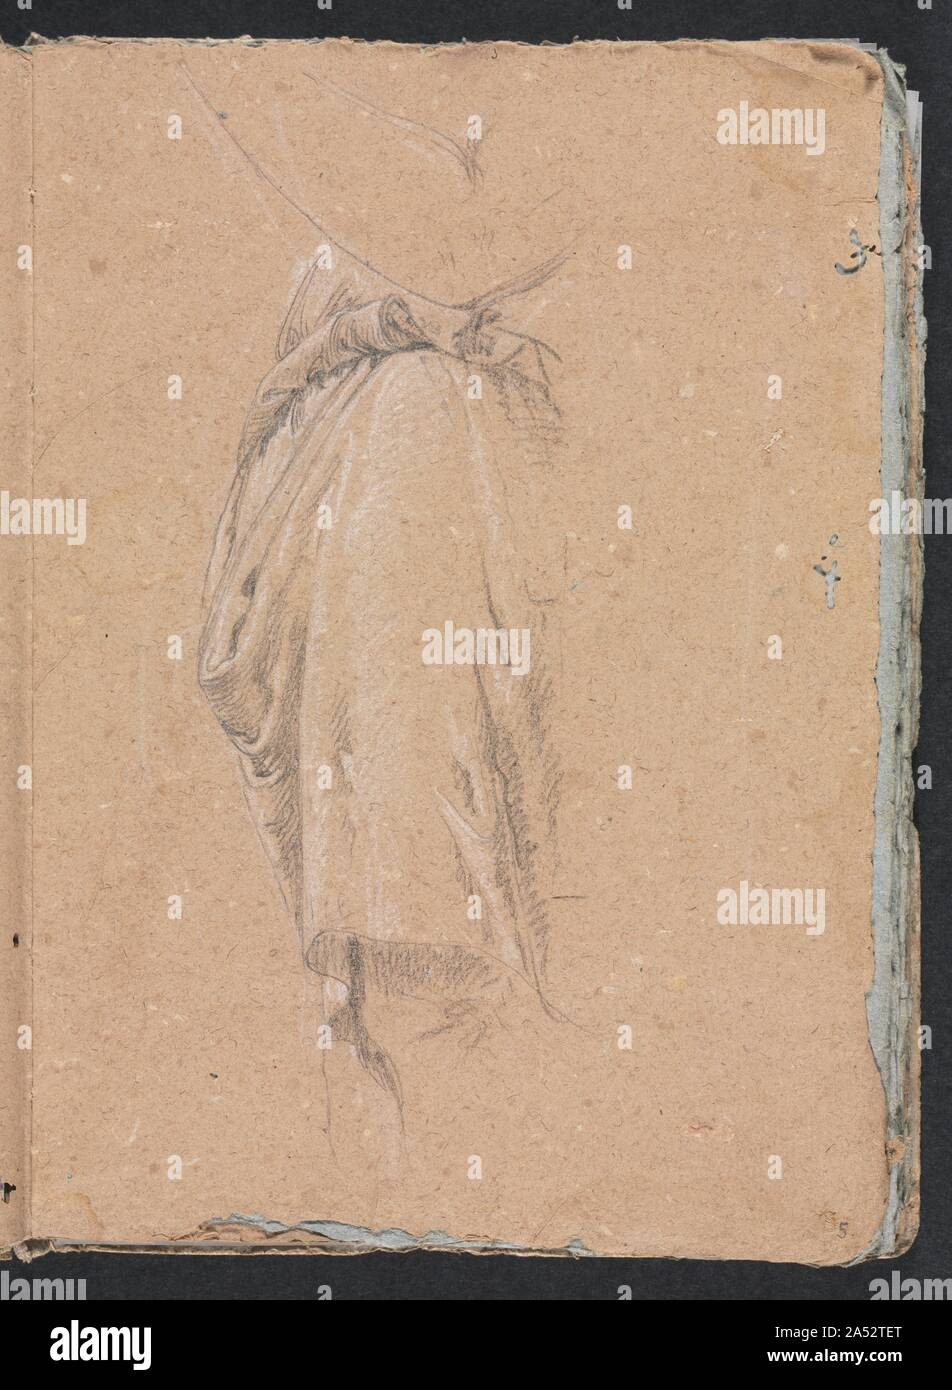 Verona Sketchbook: Drapery study with elbow (page 5), 1760. Stock Photo